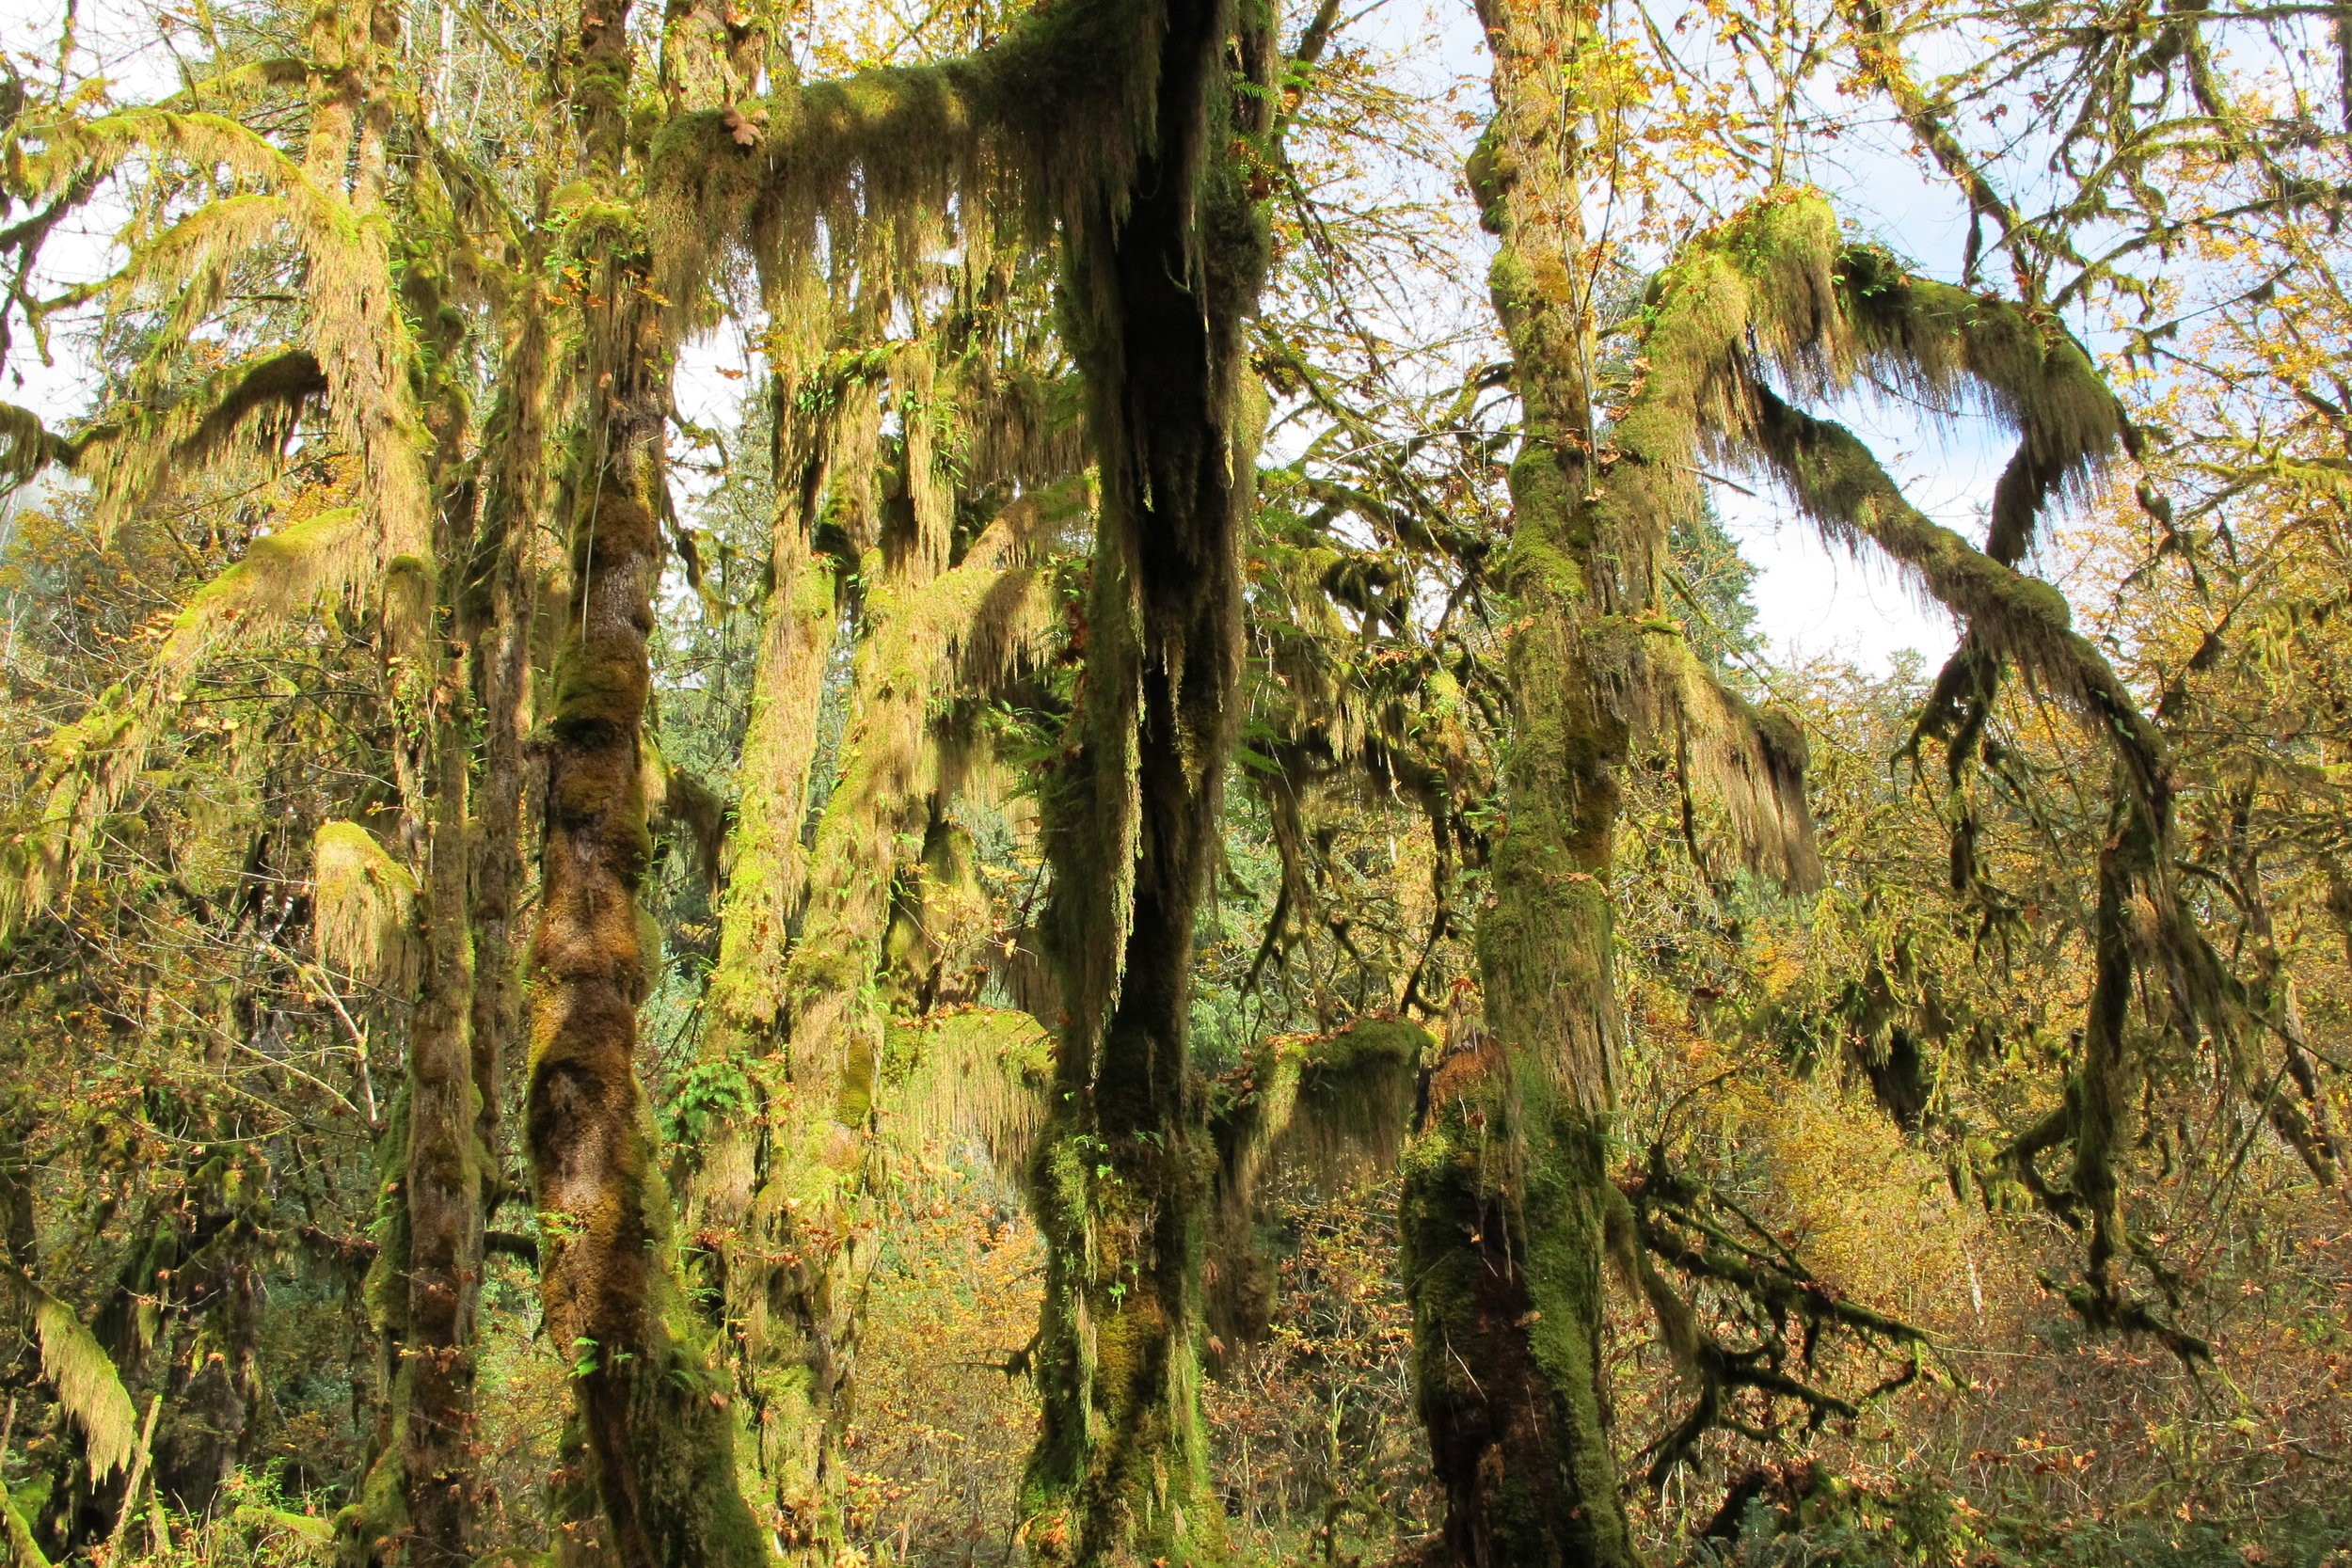 HOH RAINFOREST, OLYMPIC NATIONAL FOREST, WASHINGTON